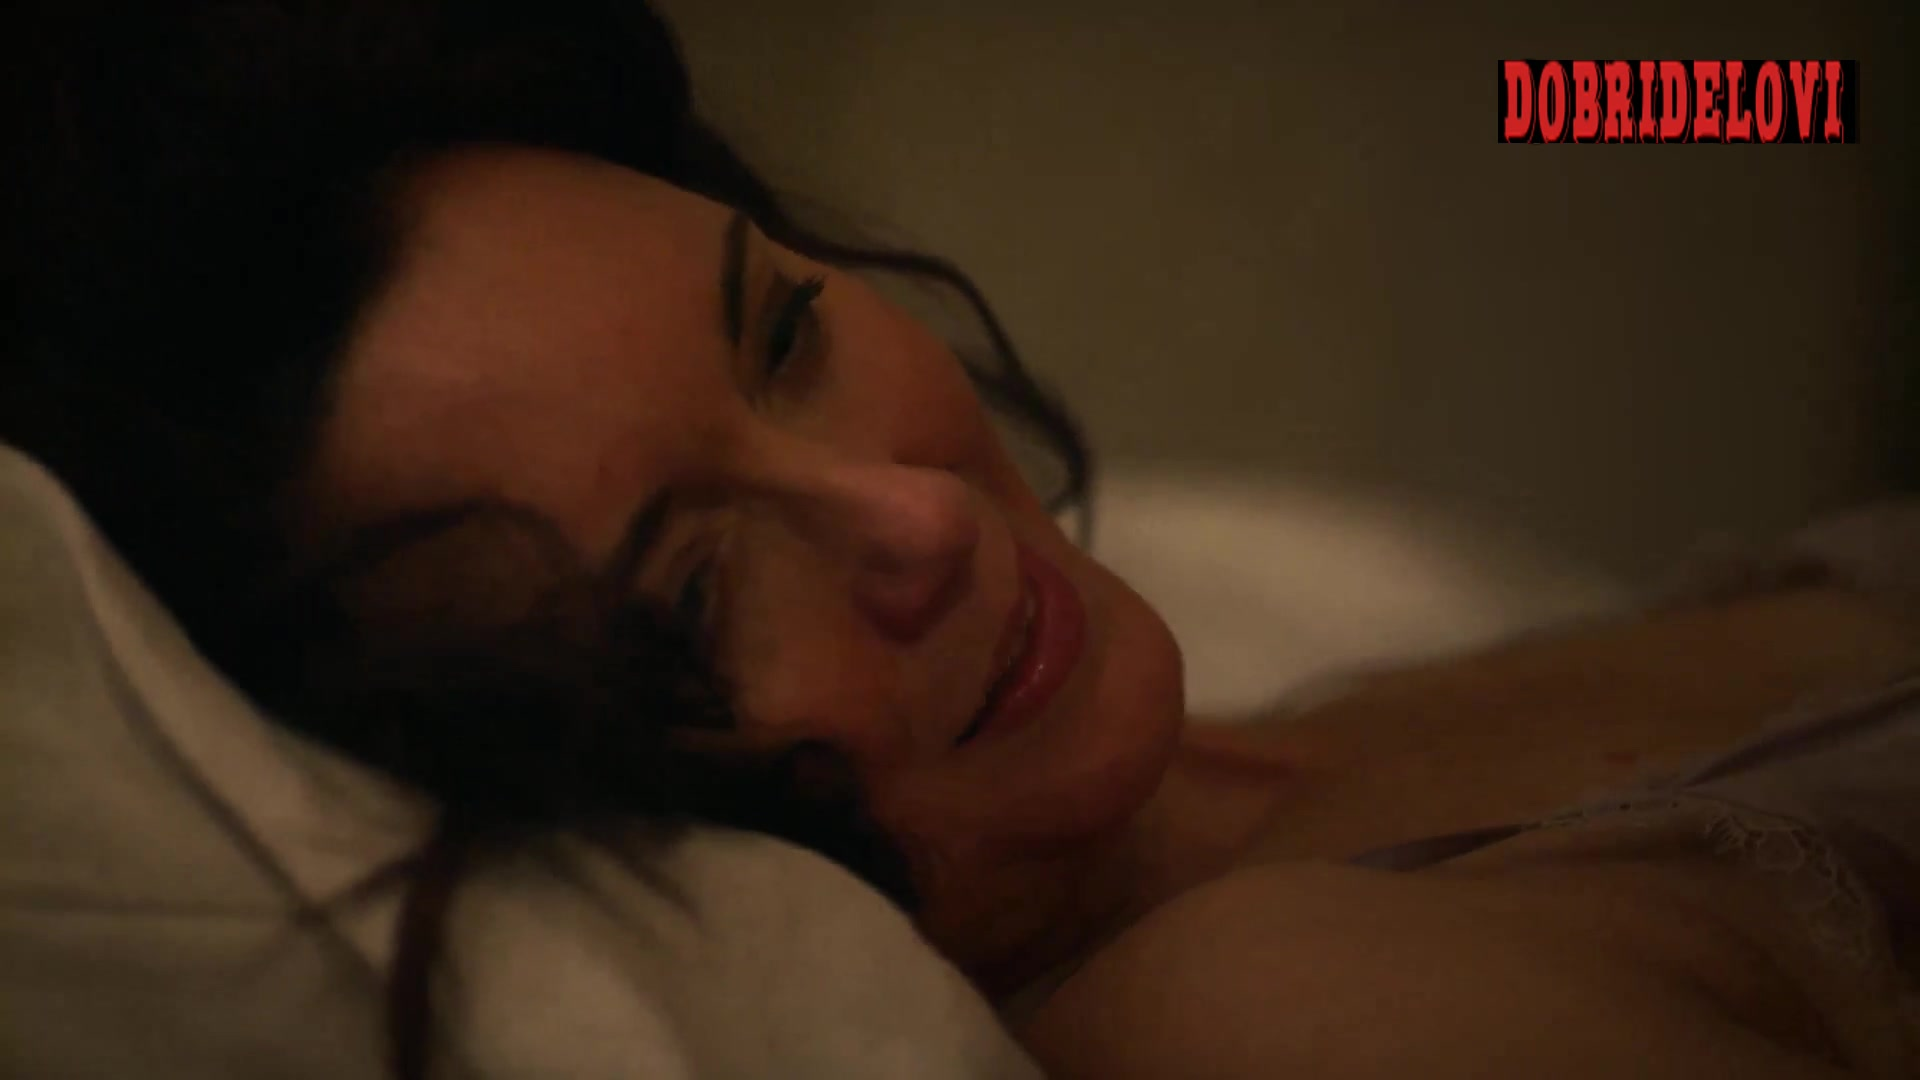 Julia Campbell laying in bed in dark room scene -- The Resident